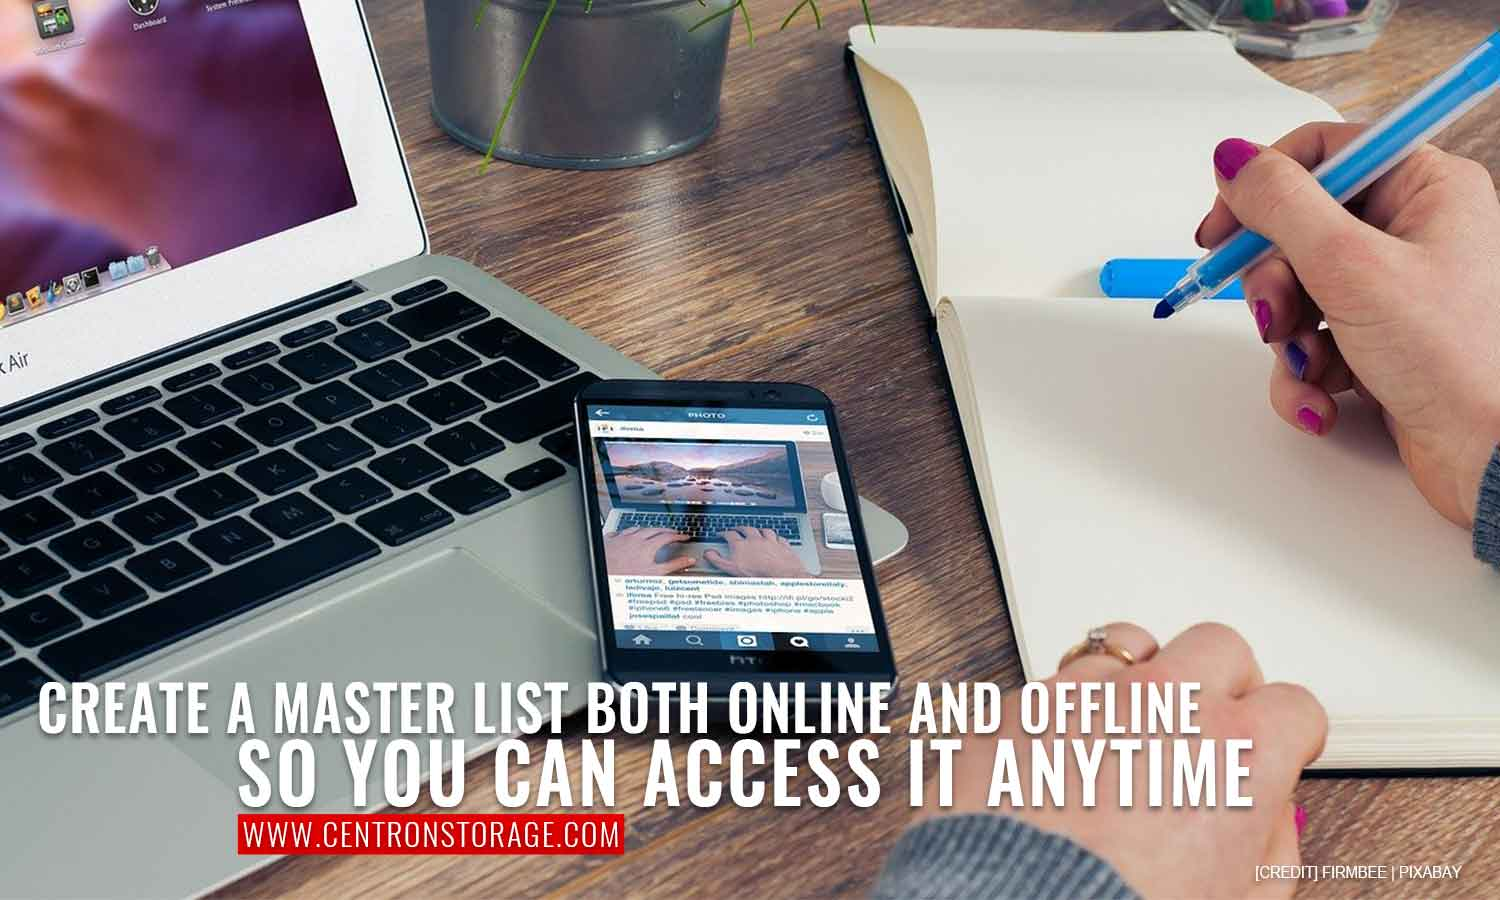 Create a master list both online and offline so you can access it anytime